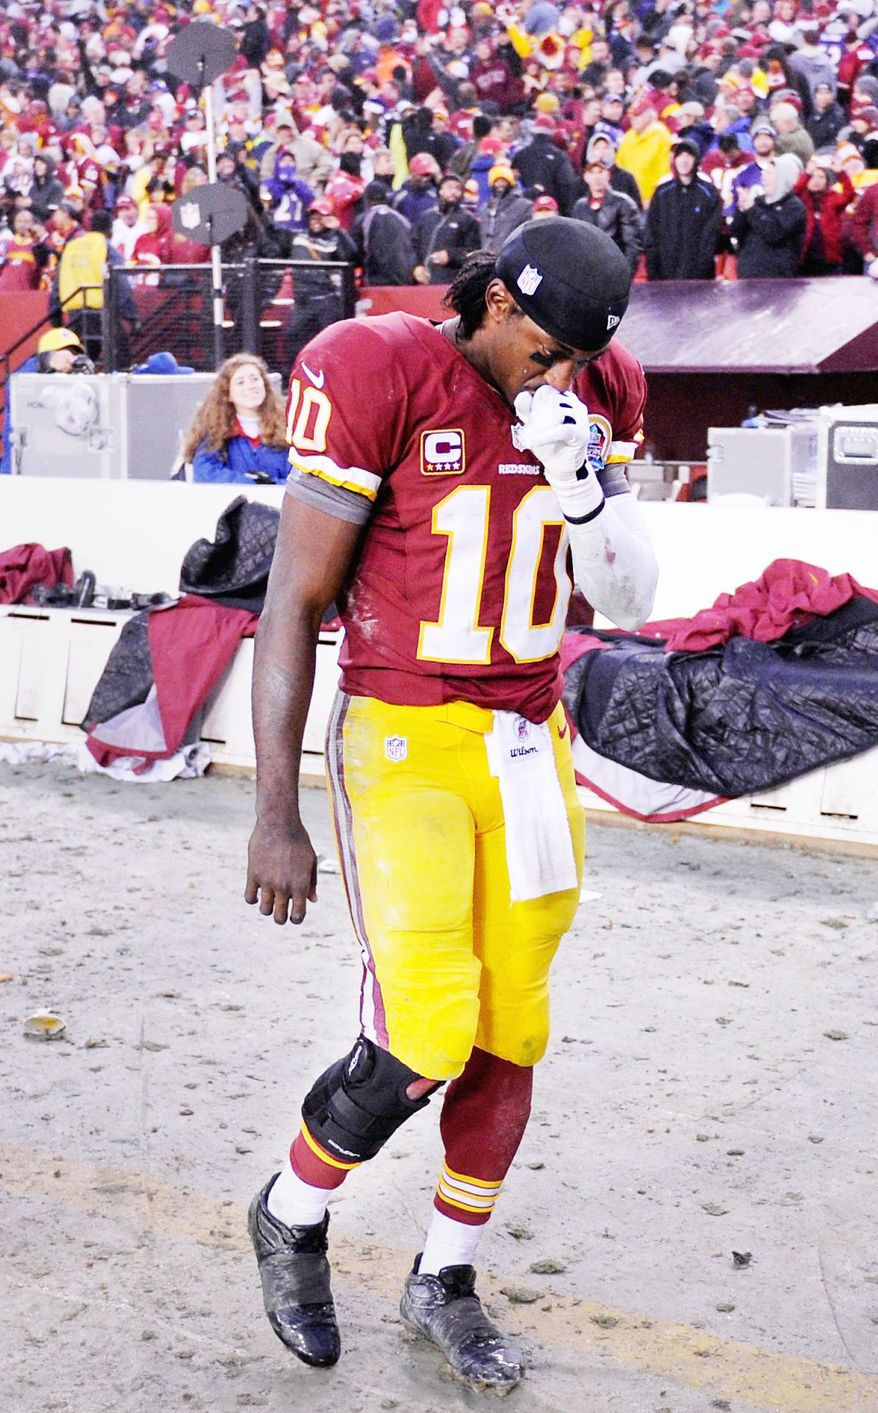 Redskins quarterback Robert Griffin III walks on the sideline with a brace on his right knee after a hit from Haloti Ngata took him out of the game. (Preston Keres/The Washington Times)